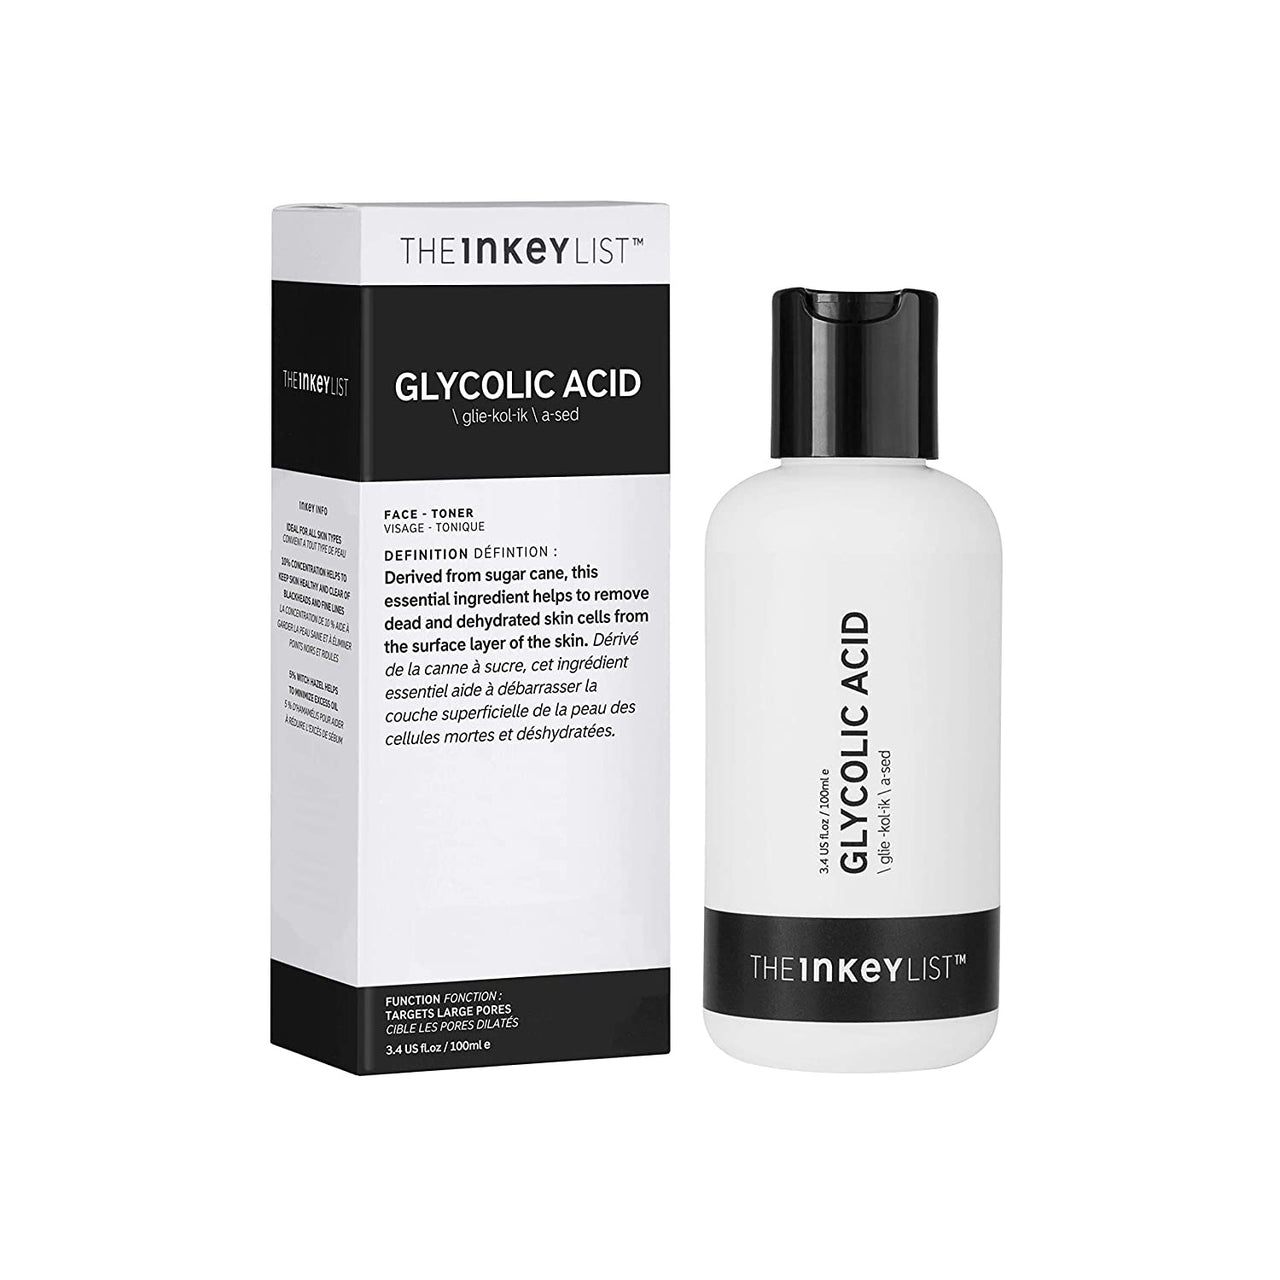 THE INKEY LIST - Glycolic Acid Toner